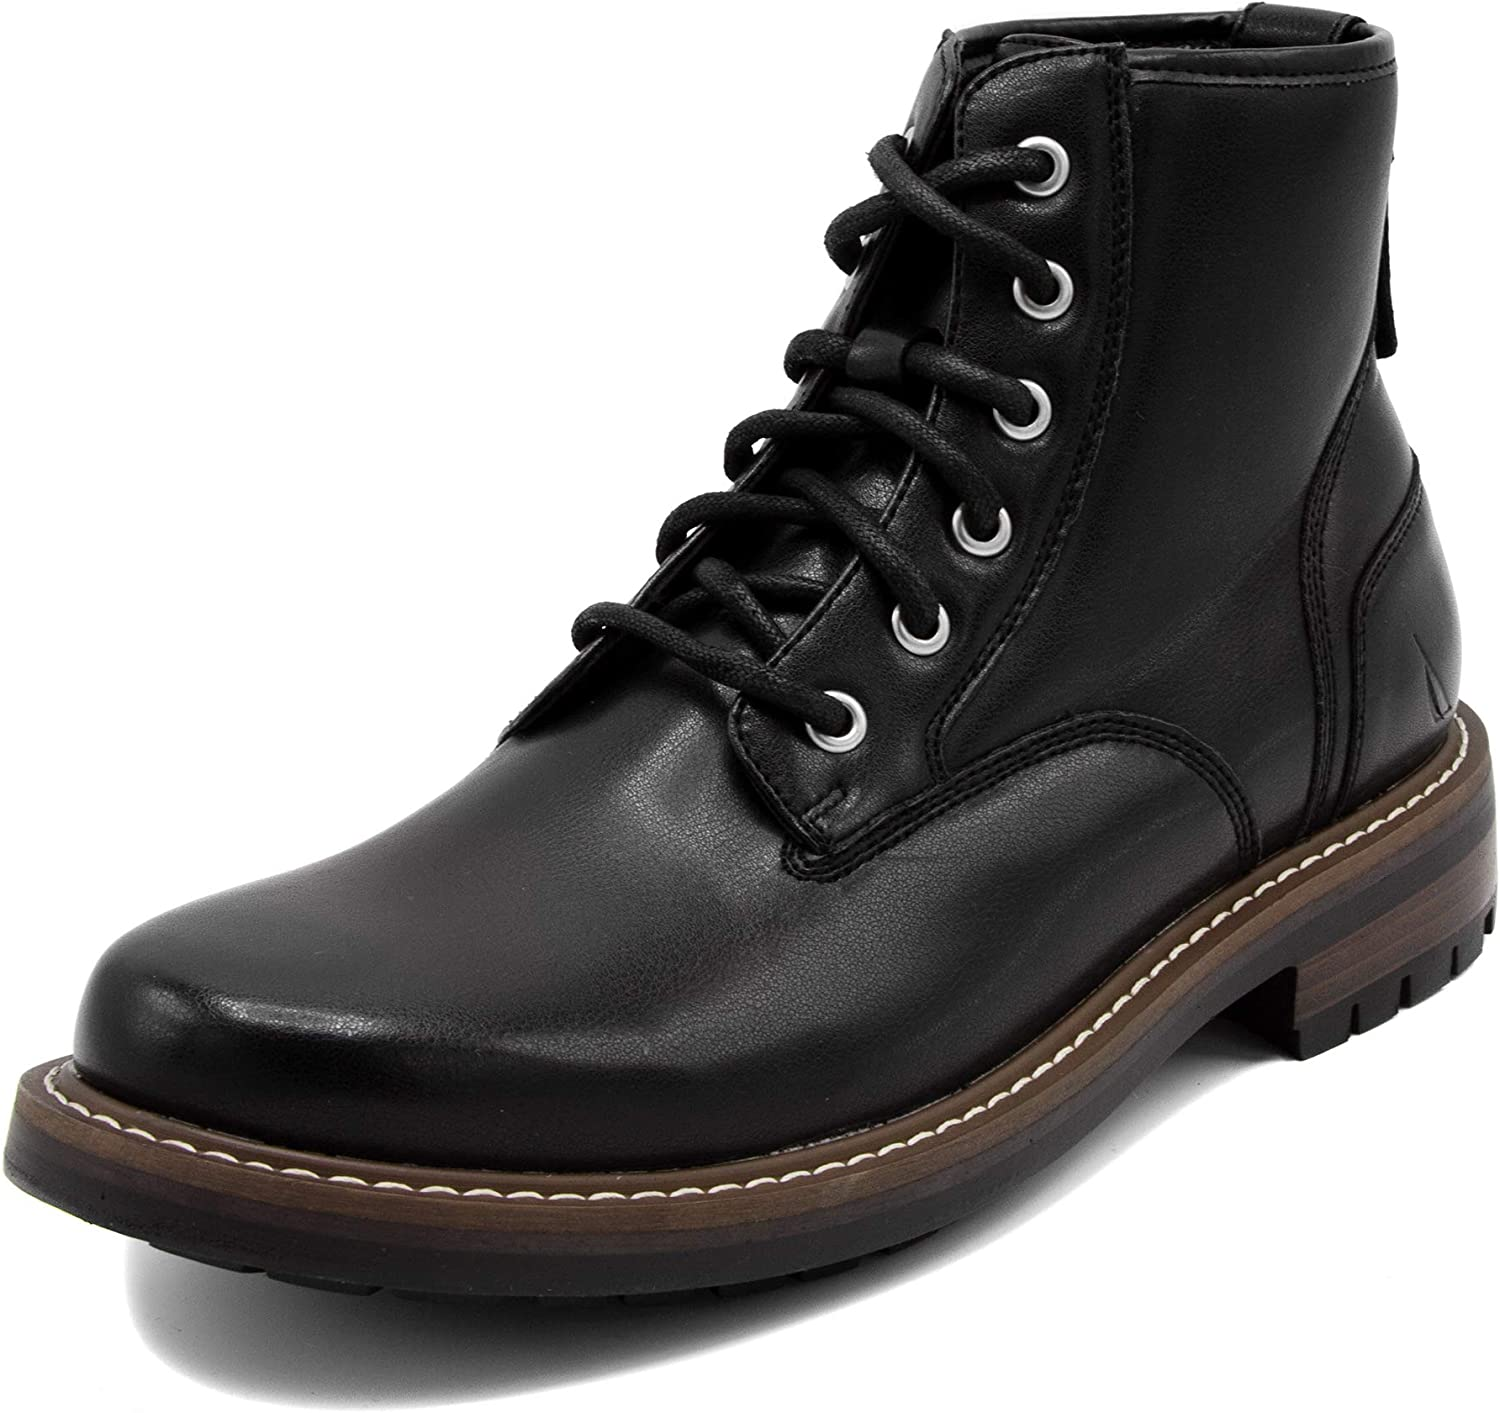 Nautica Men's Thurlow Lace Up Formal Dress Casual Fashion Boots Oxford Combat-Thurlow Boot-Black Burnish-7.5